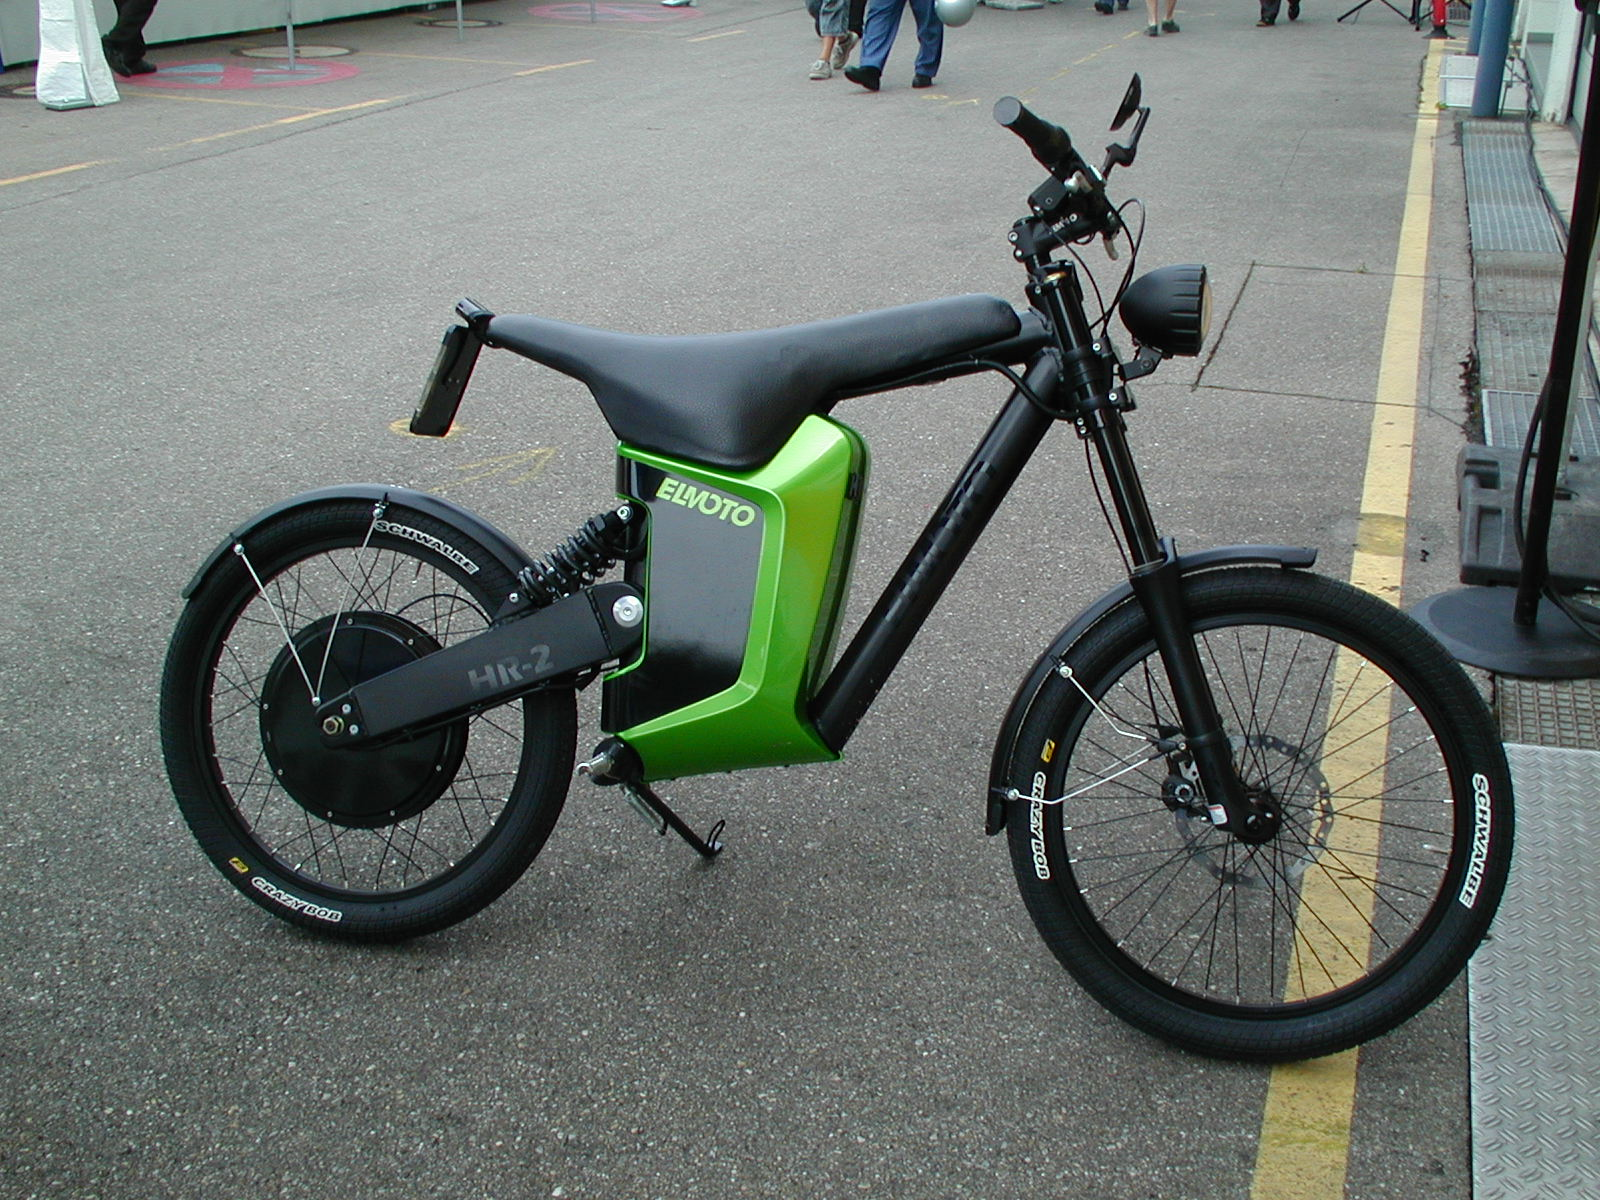 ehlektrovelosiped kupit' v krymu